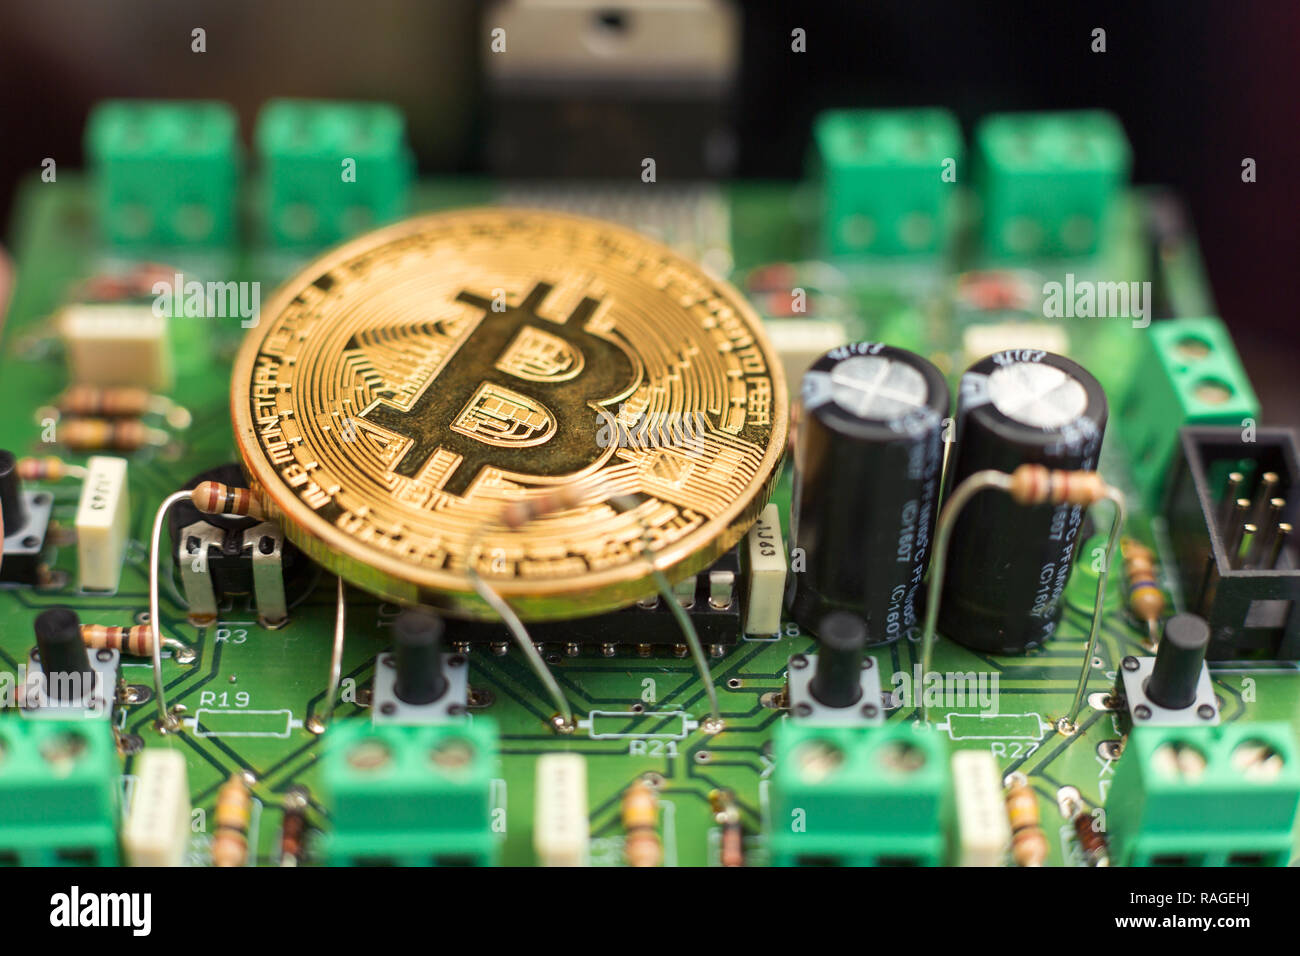 Bitcoin gold coin on computer circuit board microchips. Electronic cryptocurrency. Stock Photo